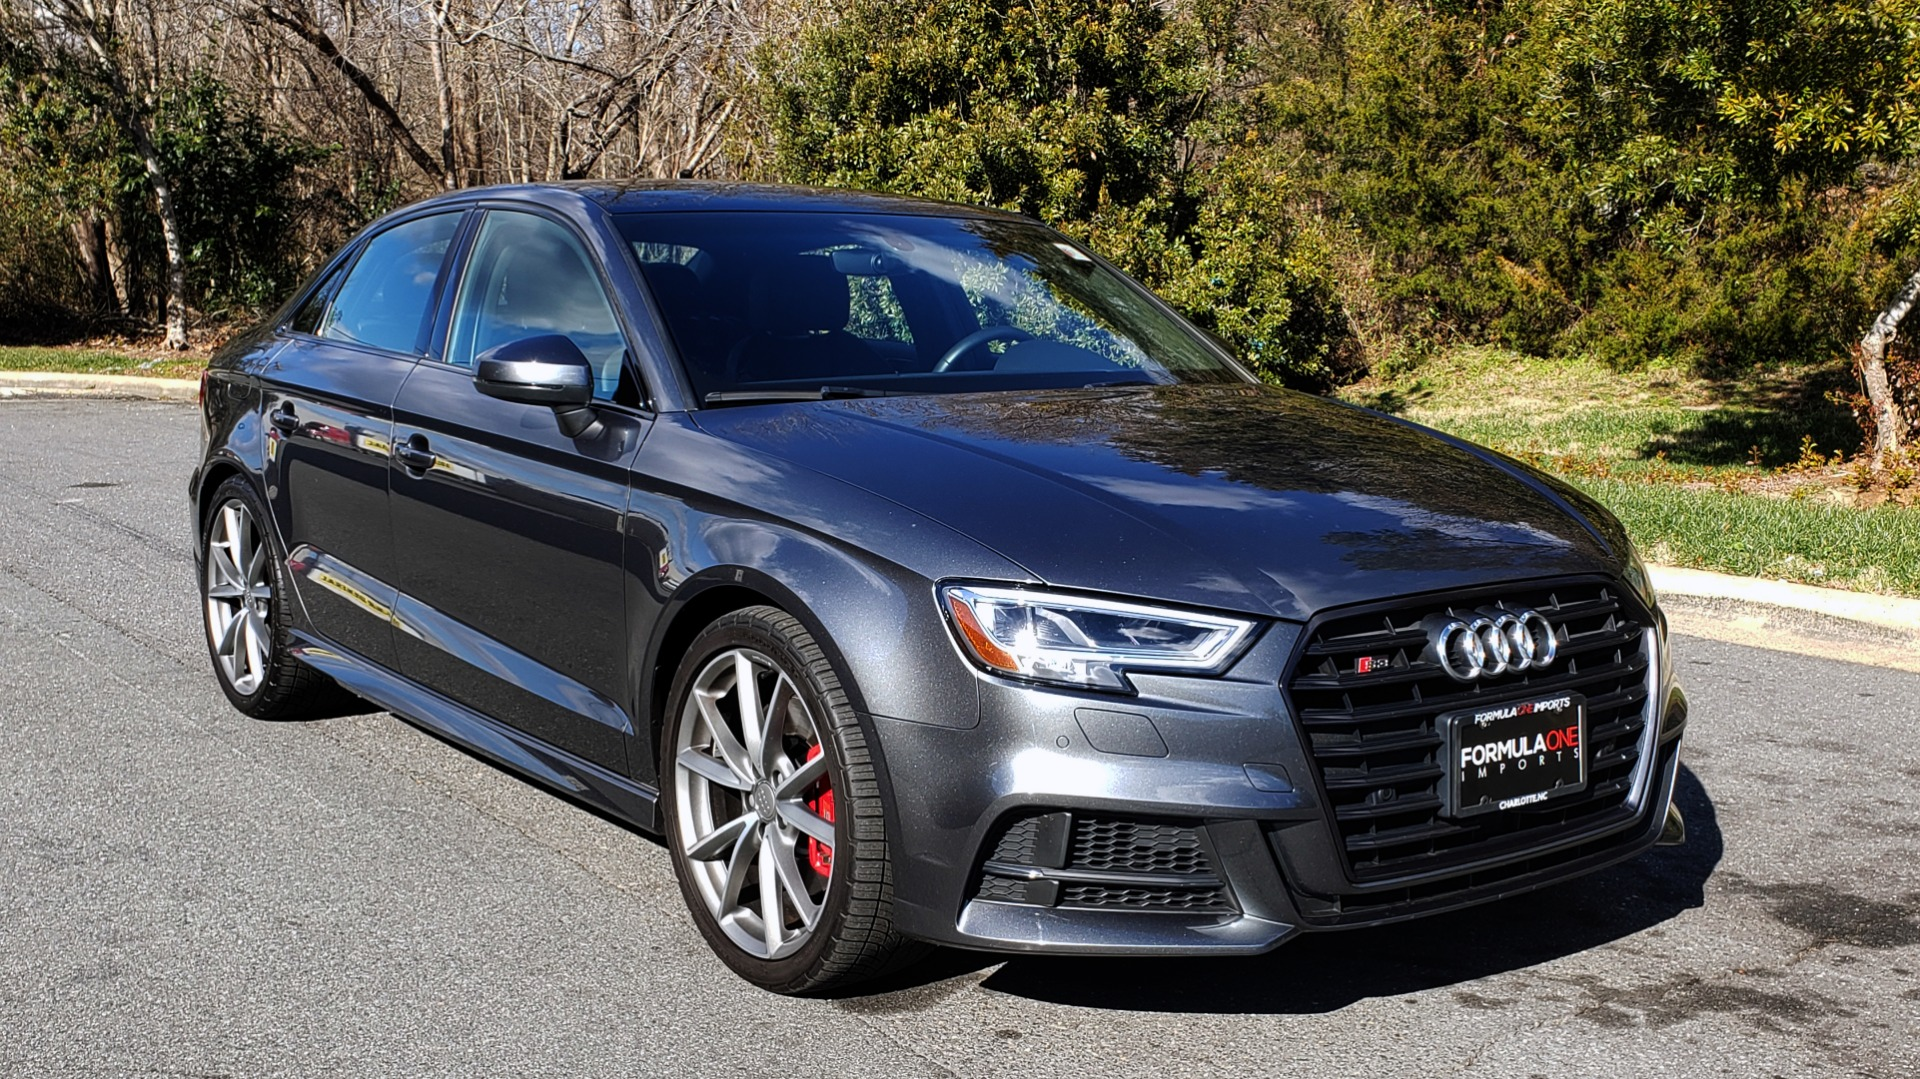 Used 2018 Audi S3 PREMIUM PLUS / TECH / NAV / BLACK OPTIC / S-SPORT / REARVIEW for sale $32,995 at Formula Imports in Charlotte NC 28227 4